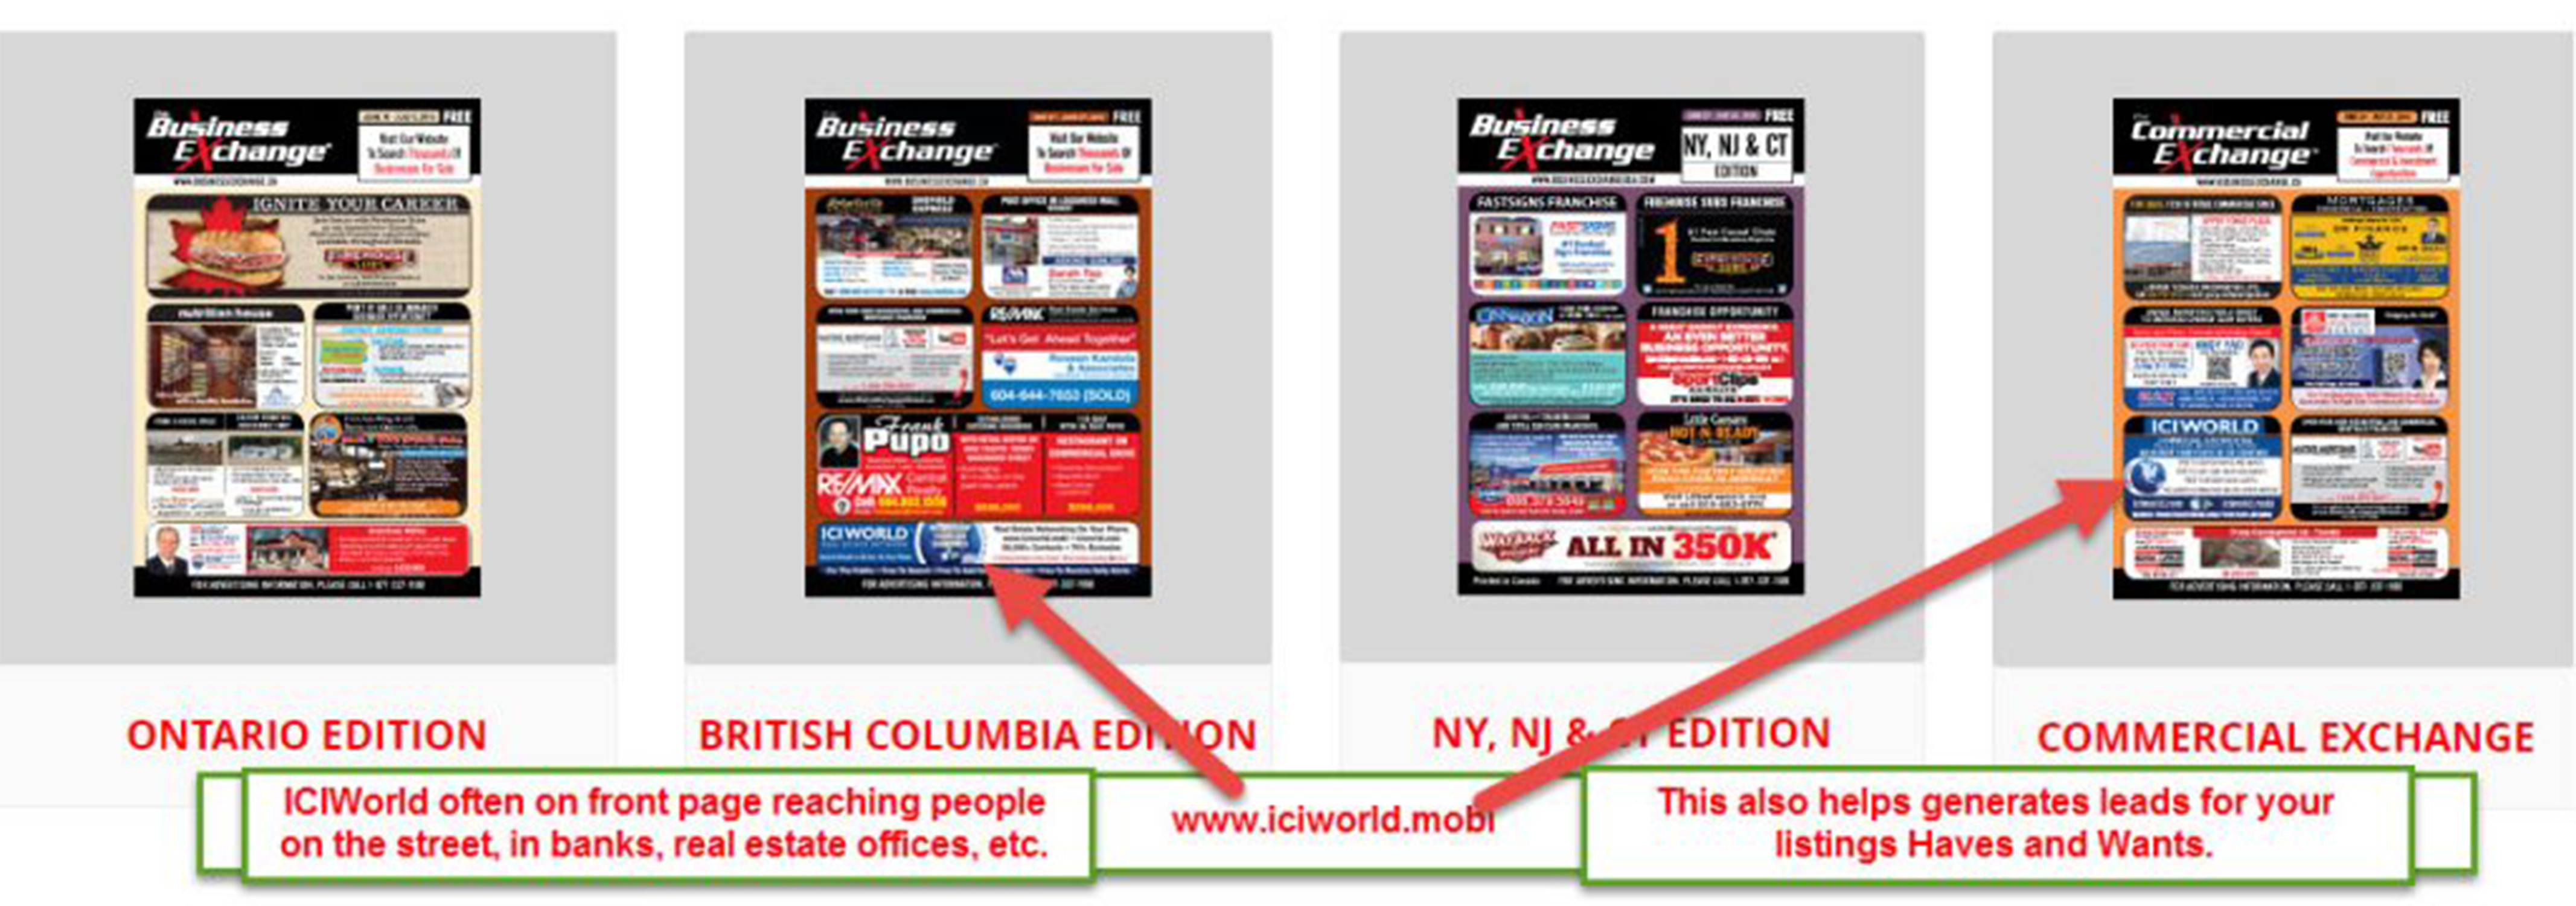 ICIWorld.com BC and Ontario Advertising